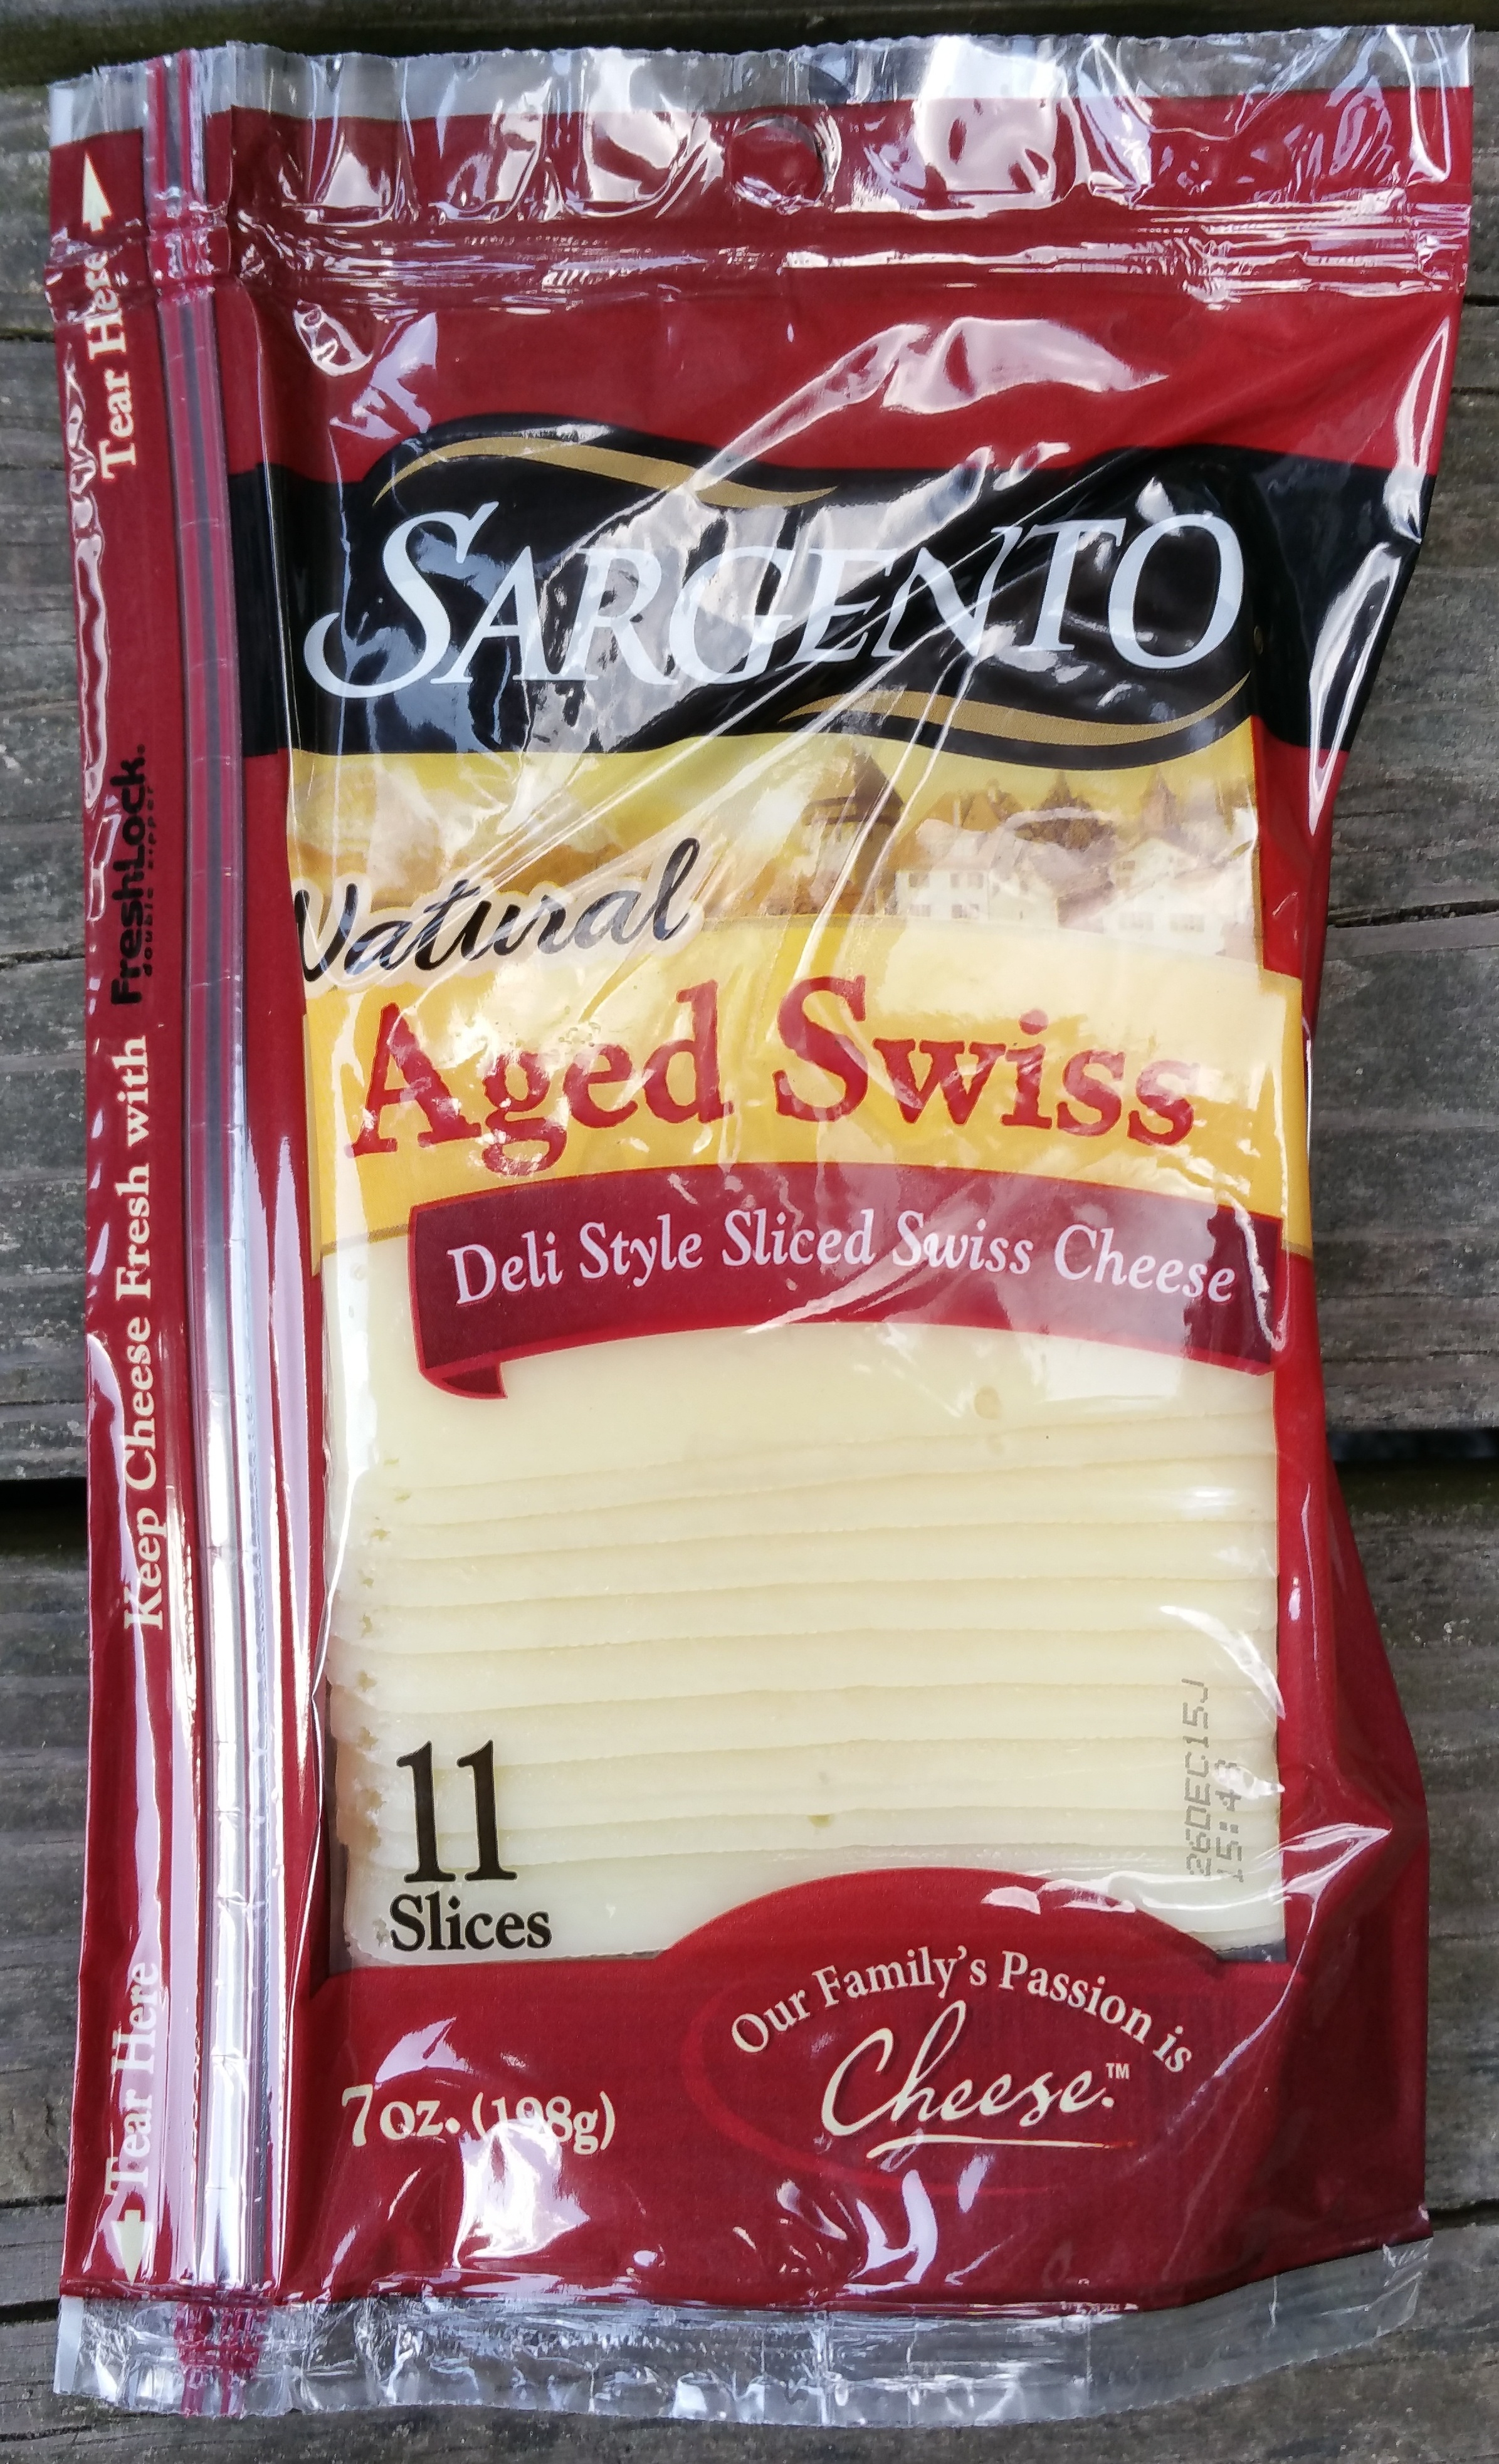 Natural Aged Swiss Cheese - Product